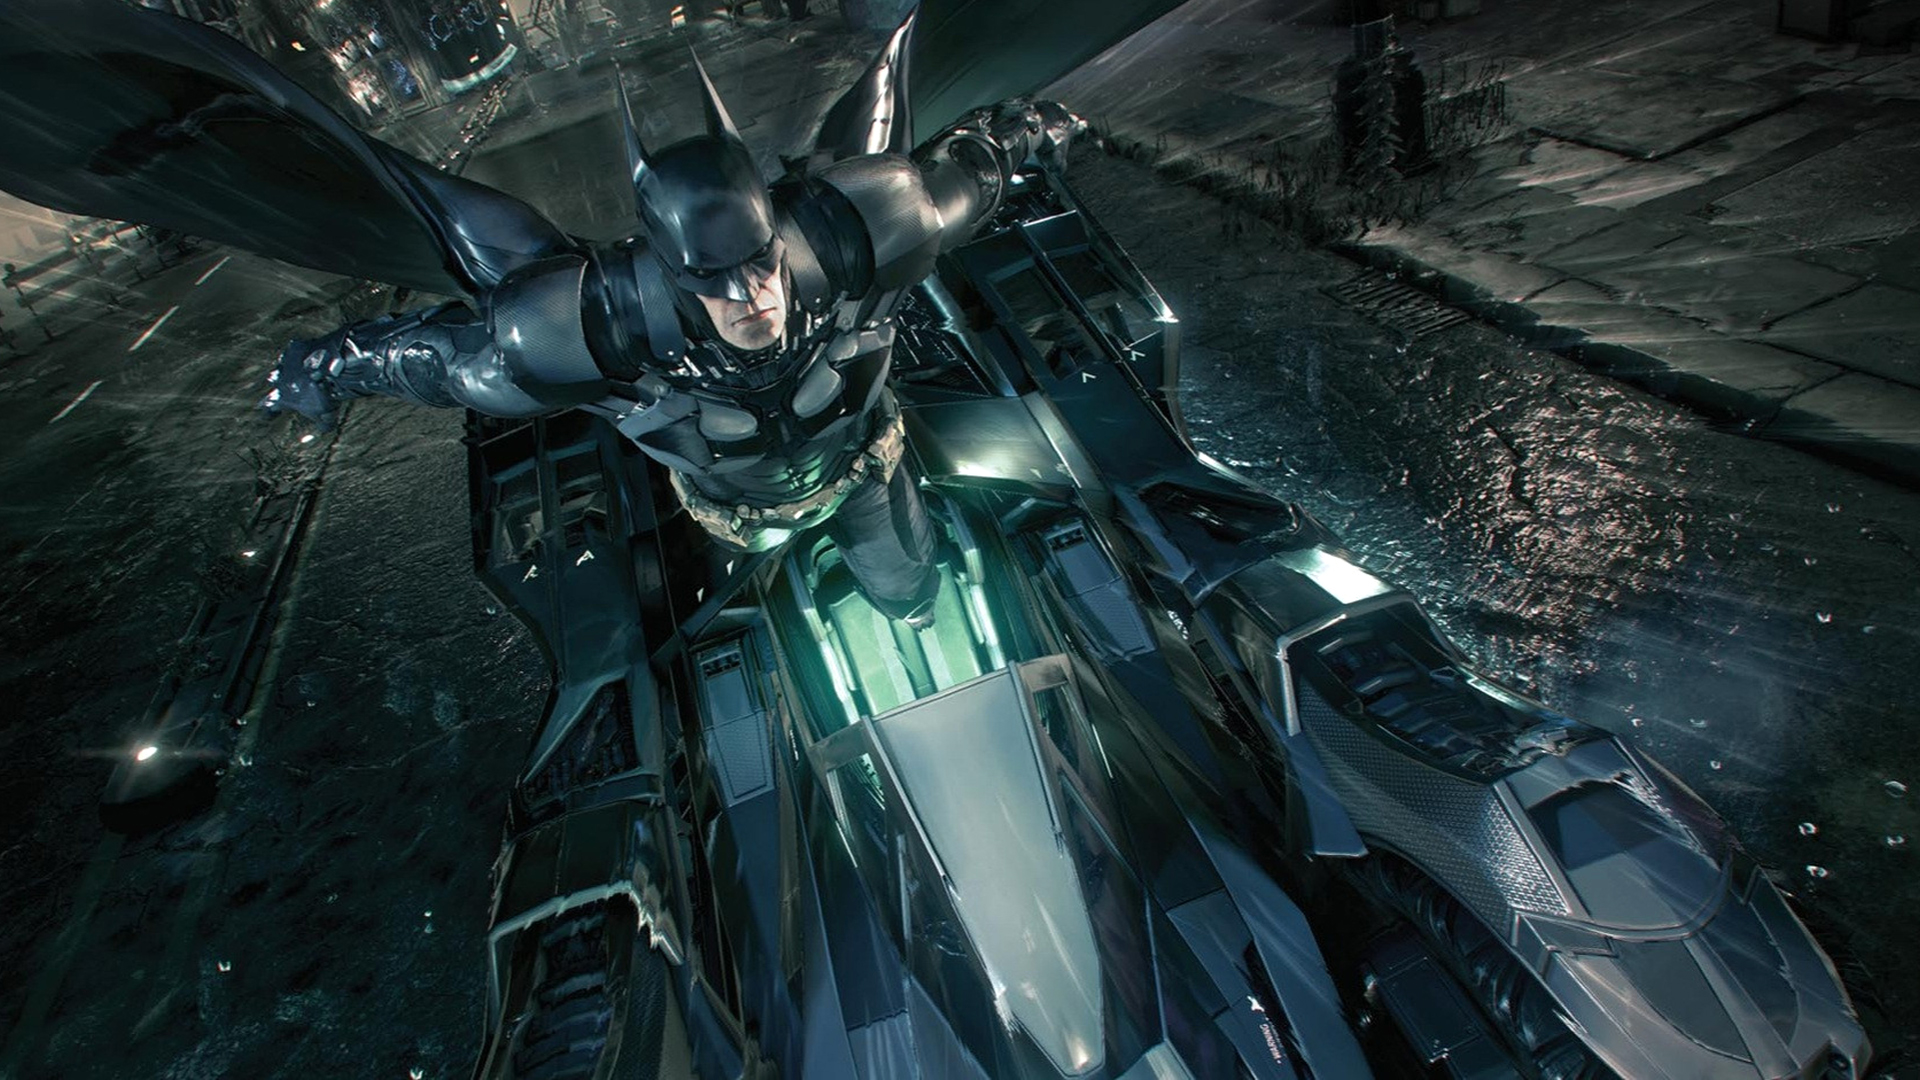 New Batmobile Batman Arkham Knight Game Hd